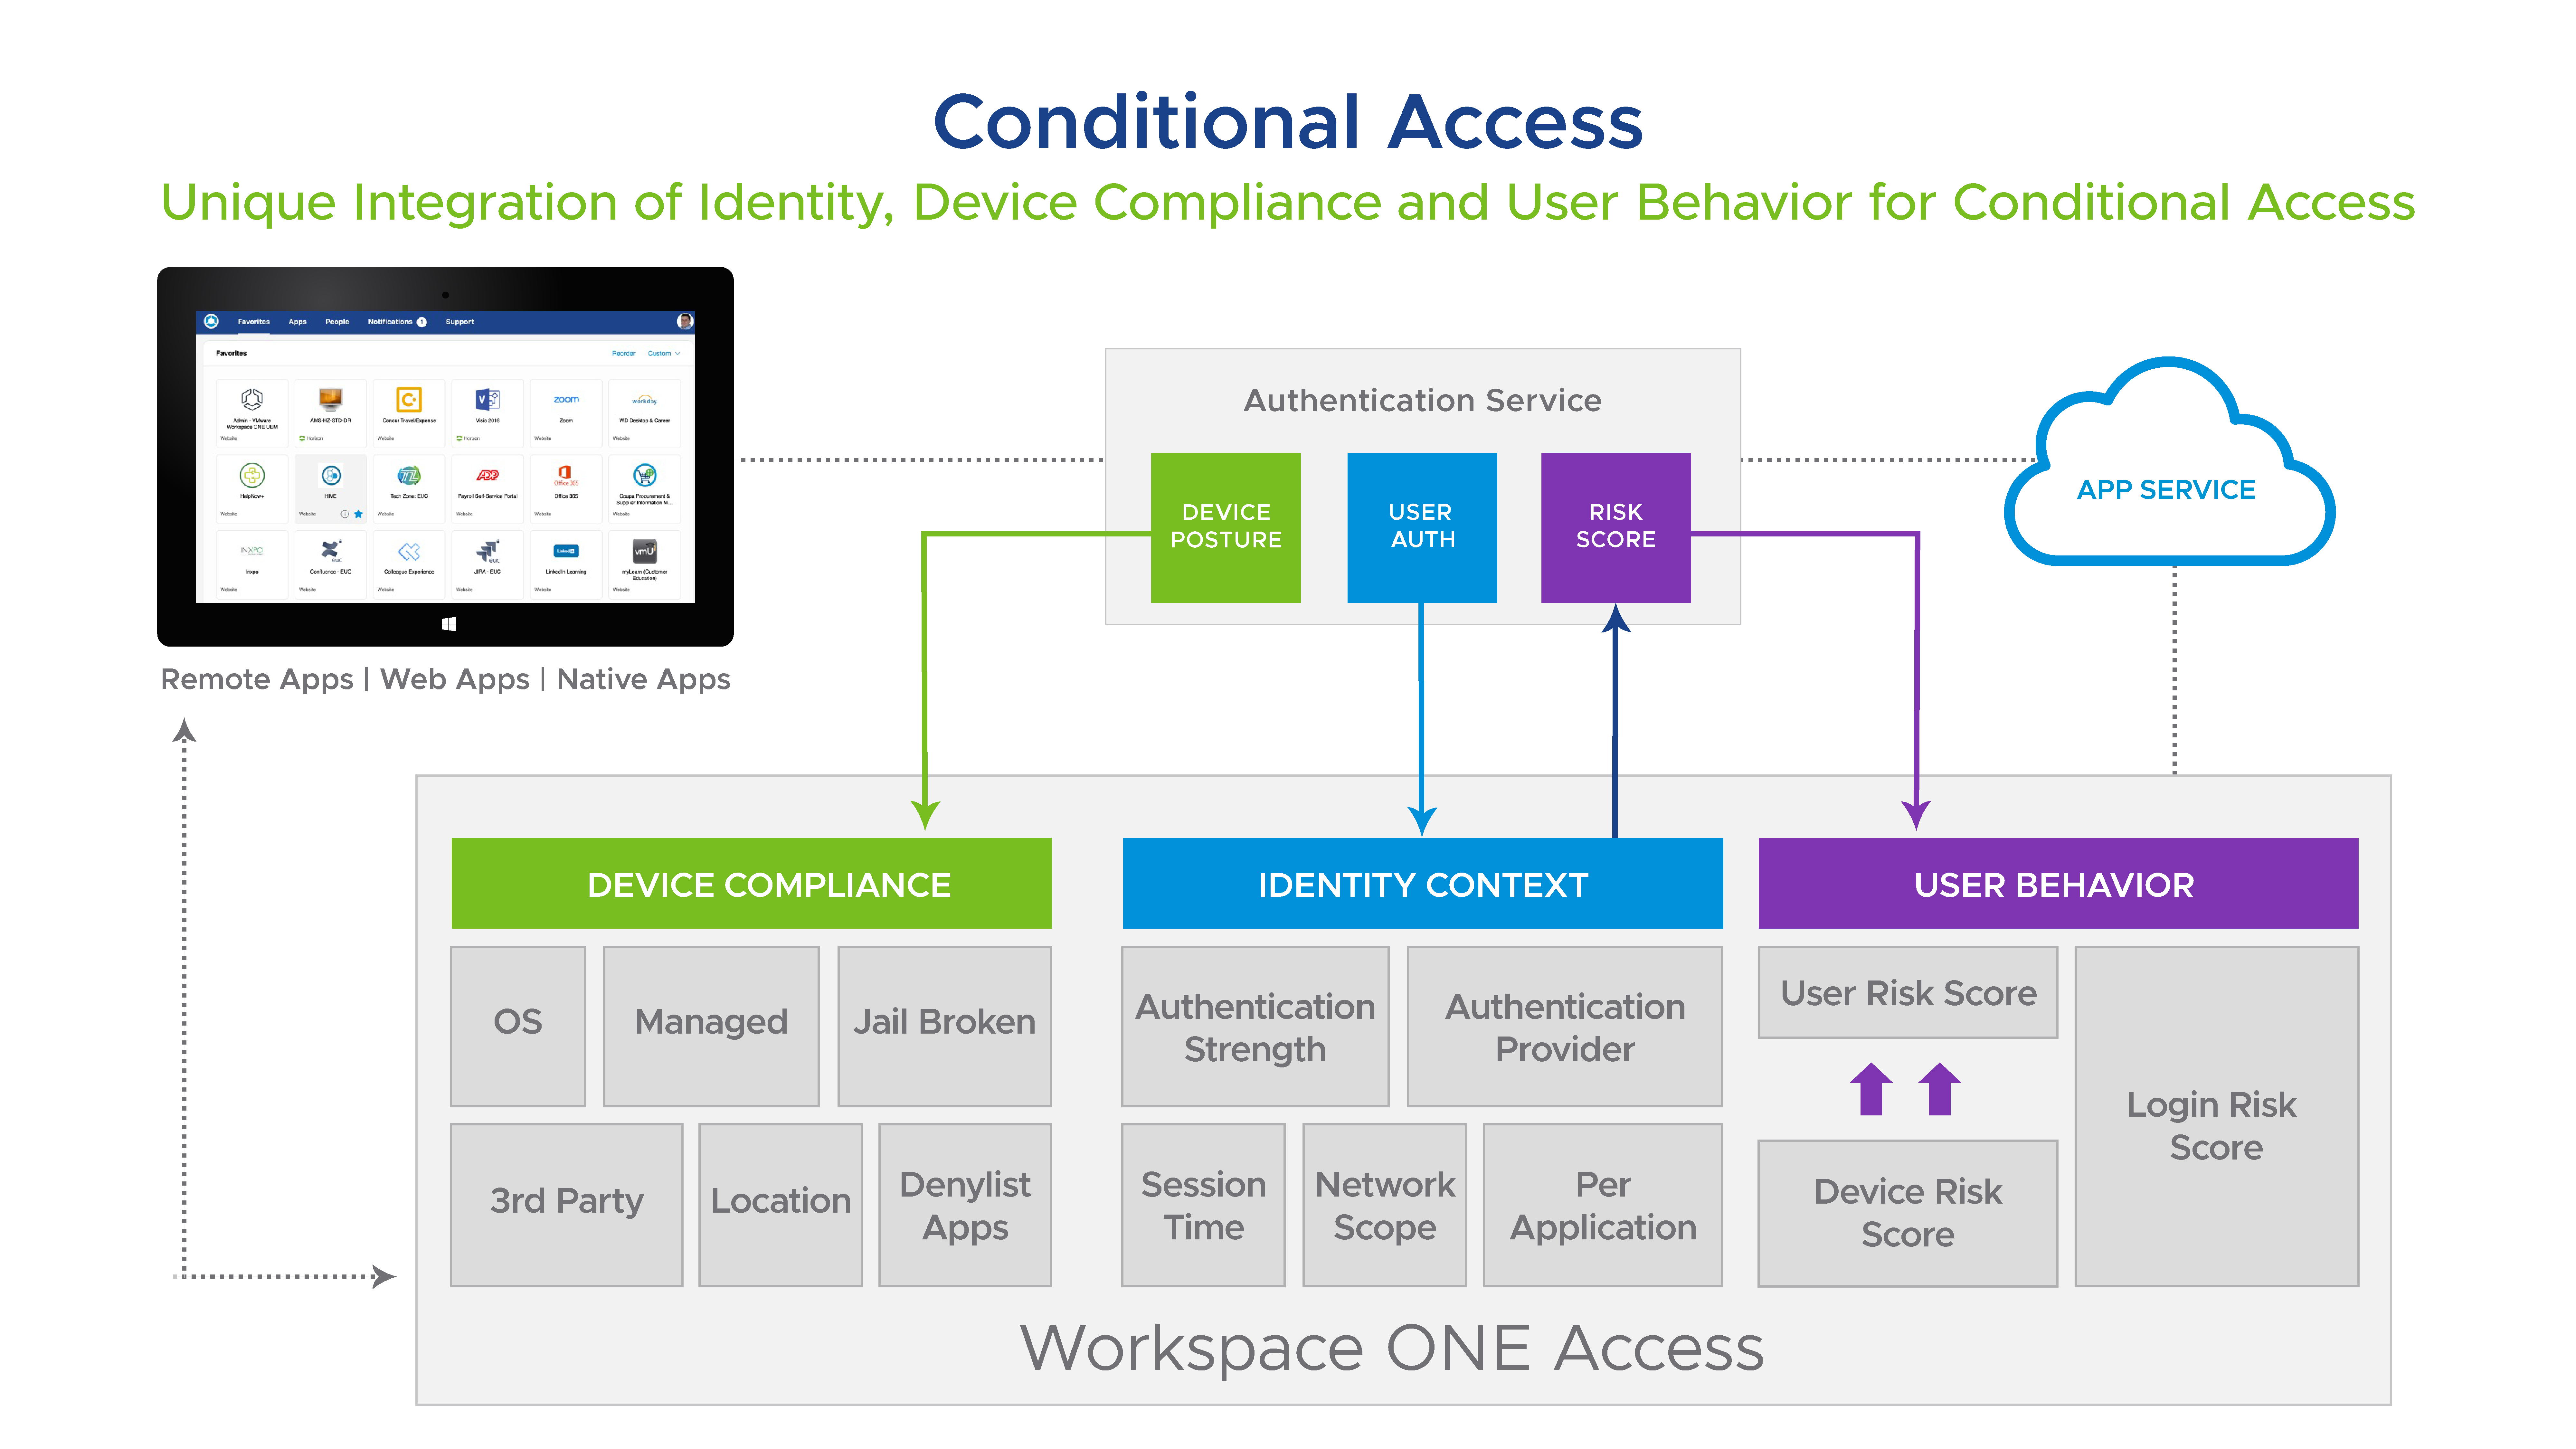 vm graphics 040721 conditional access